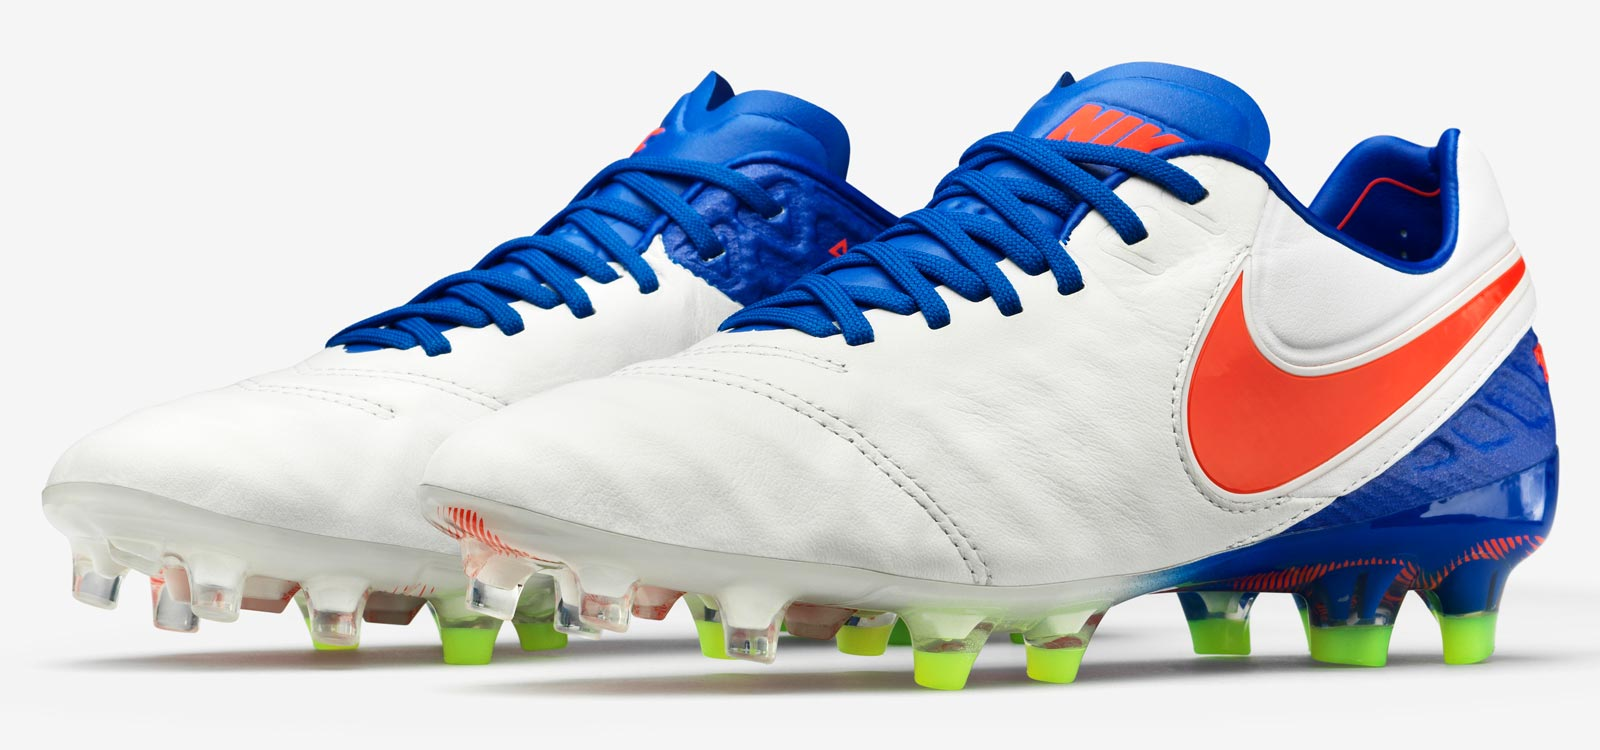 nike tiempo legend vi 2016 olympics boots revealed footy. Black Bedroom Furniture Sets. Home Design Ideas